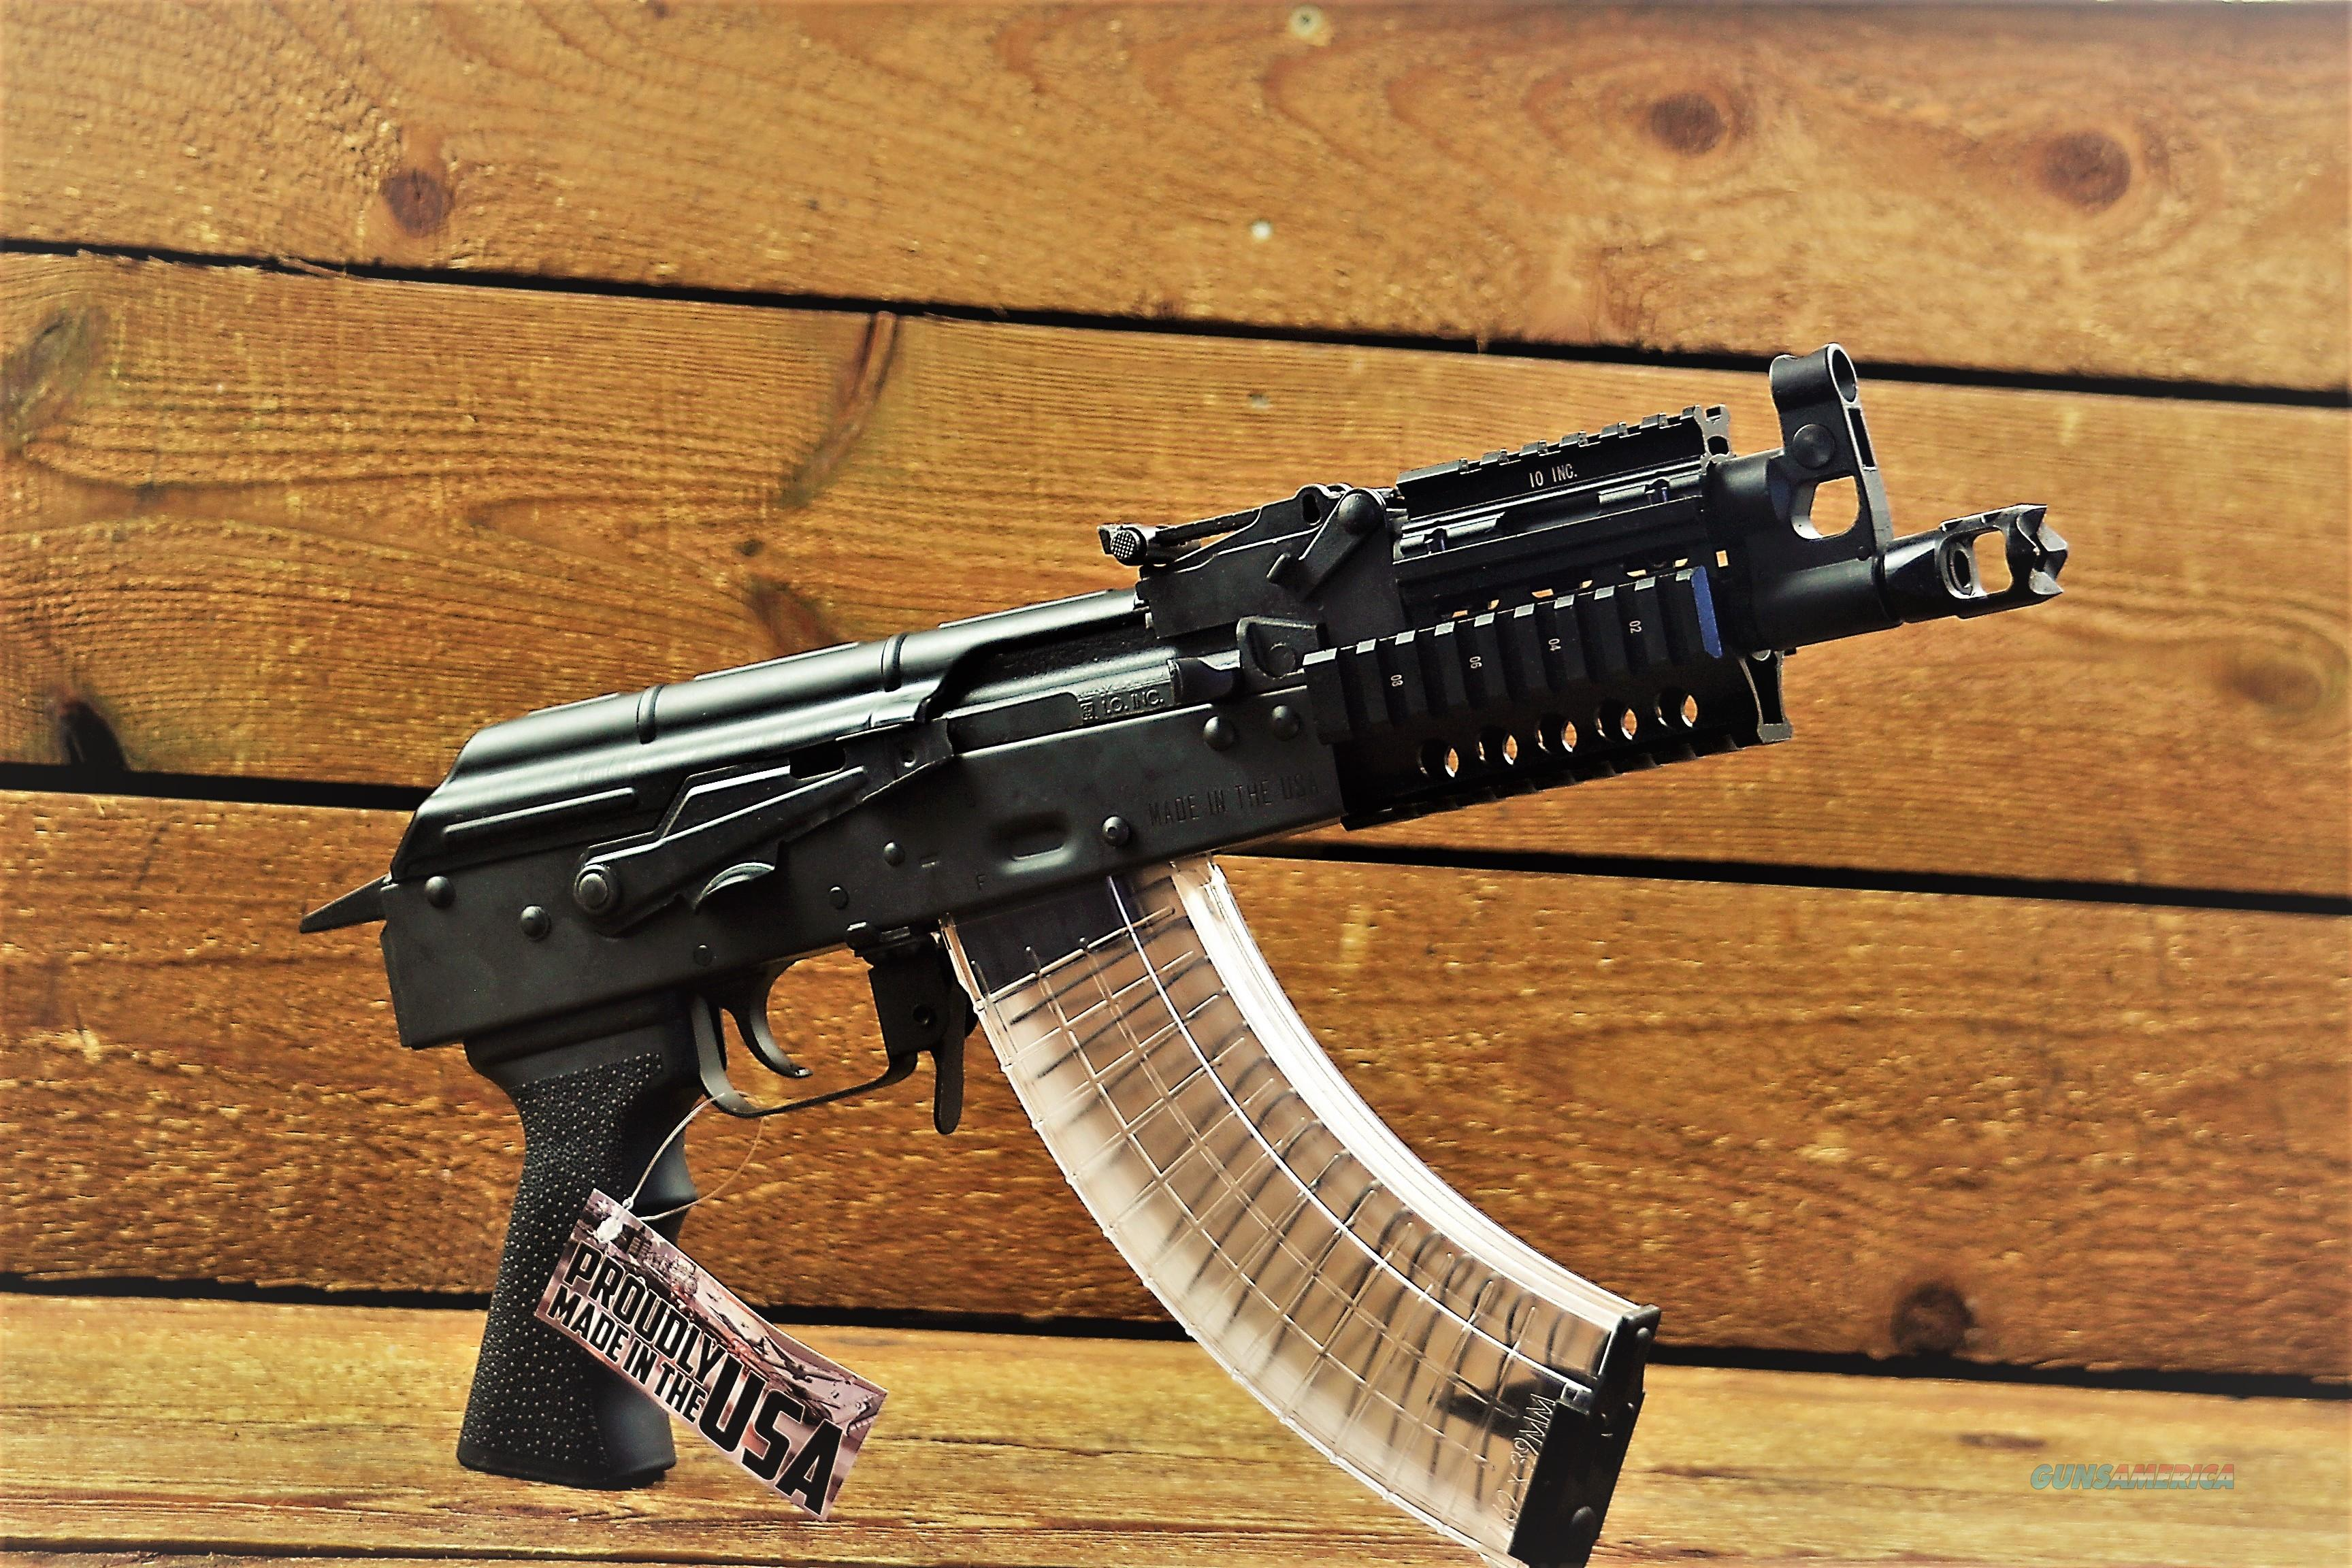 EASY PAY $64 LAYAWAY I.O. Inc. M214 Nano AK AK-47 Semi-automatic Pistol 7.62x39mm AK47 30 Rounds Quad Rail  IONANO5001  Guns > Rifles > Century International Arms - Rifles > Rifles